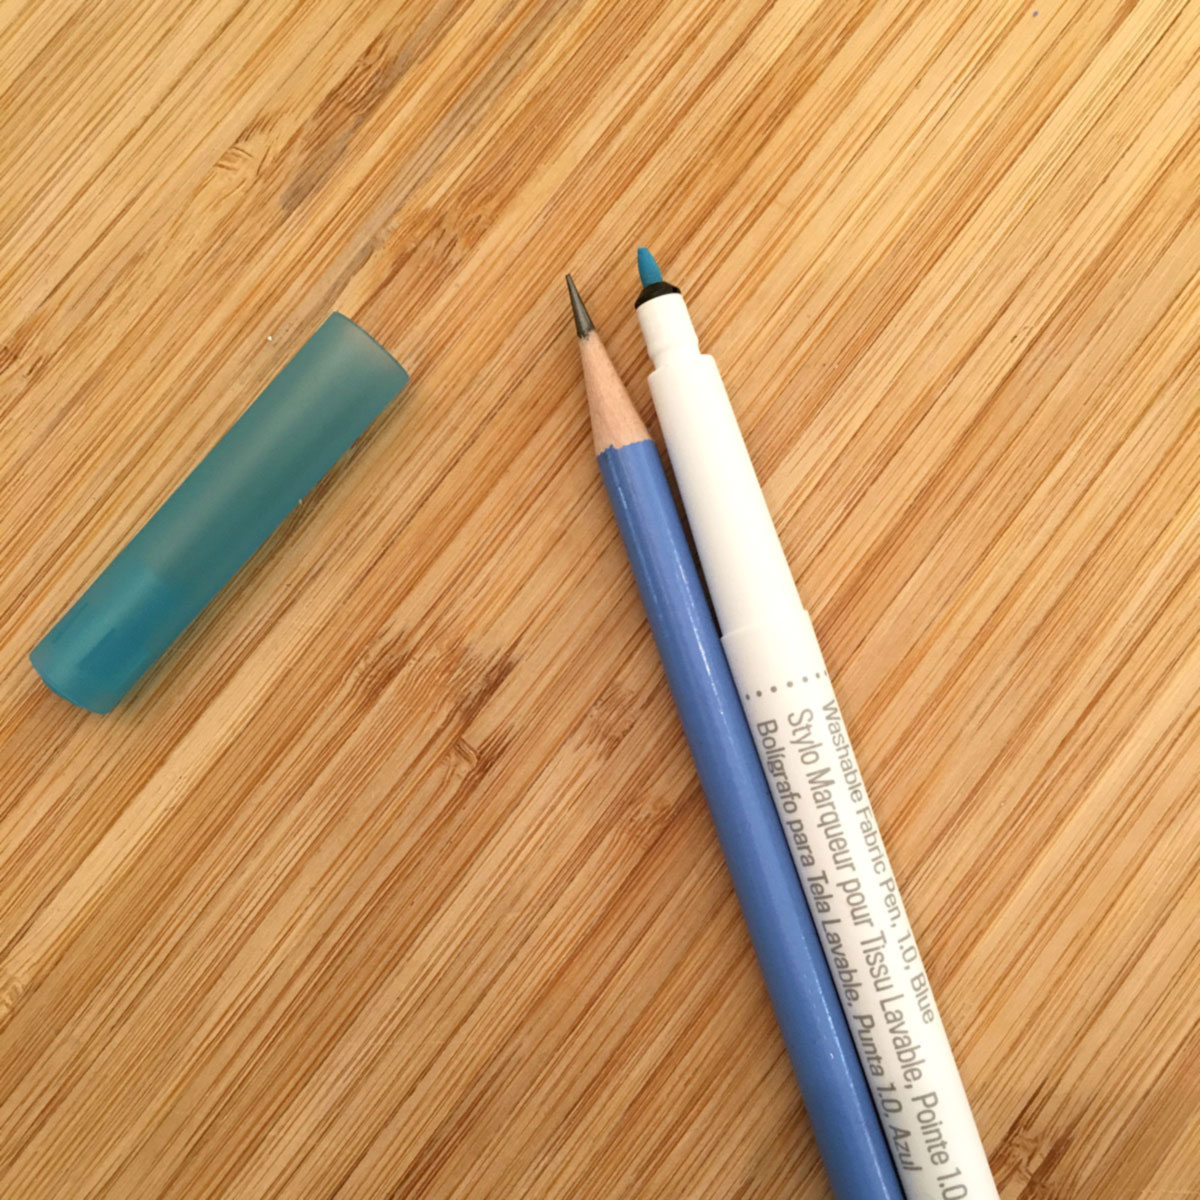 Replacing cricut pen with pencil